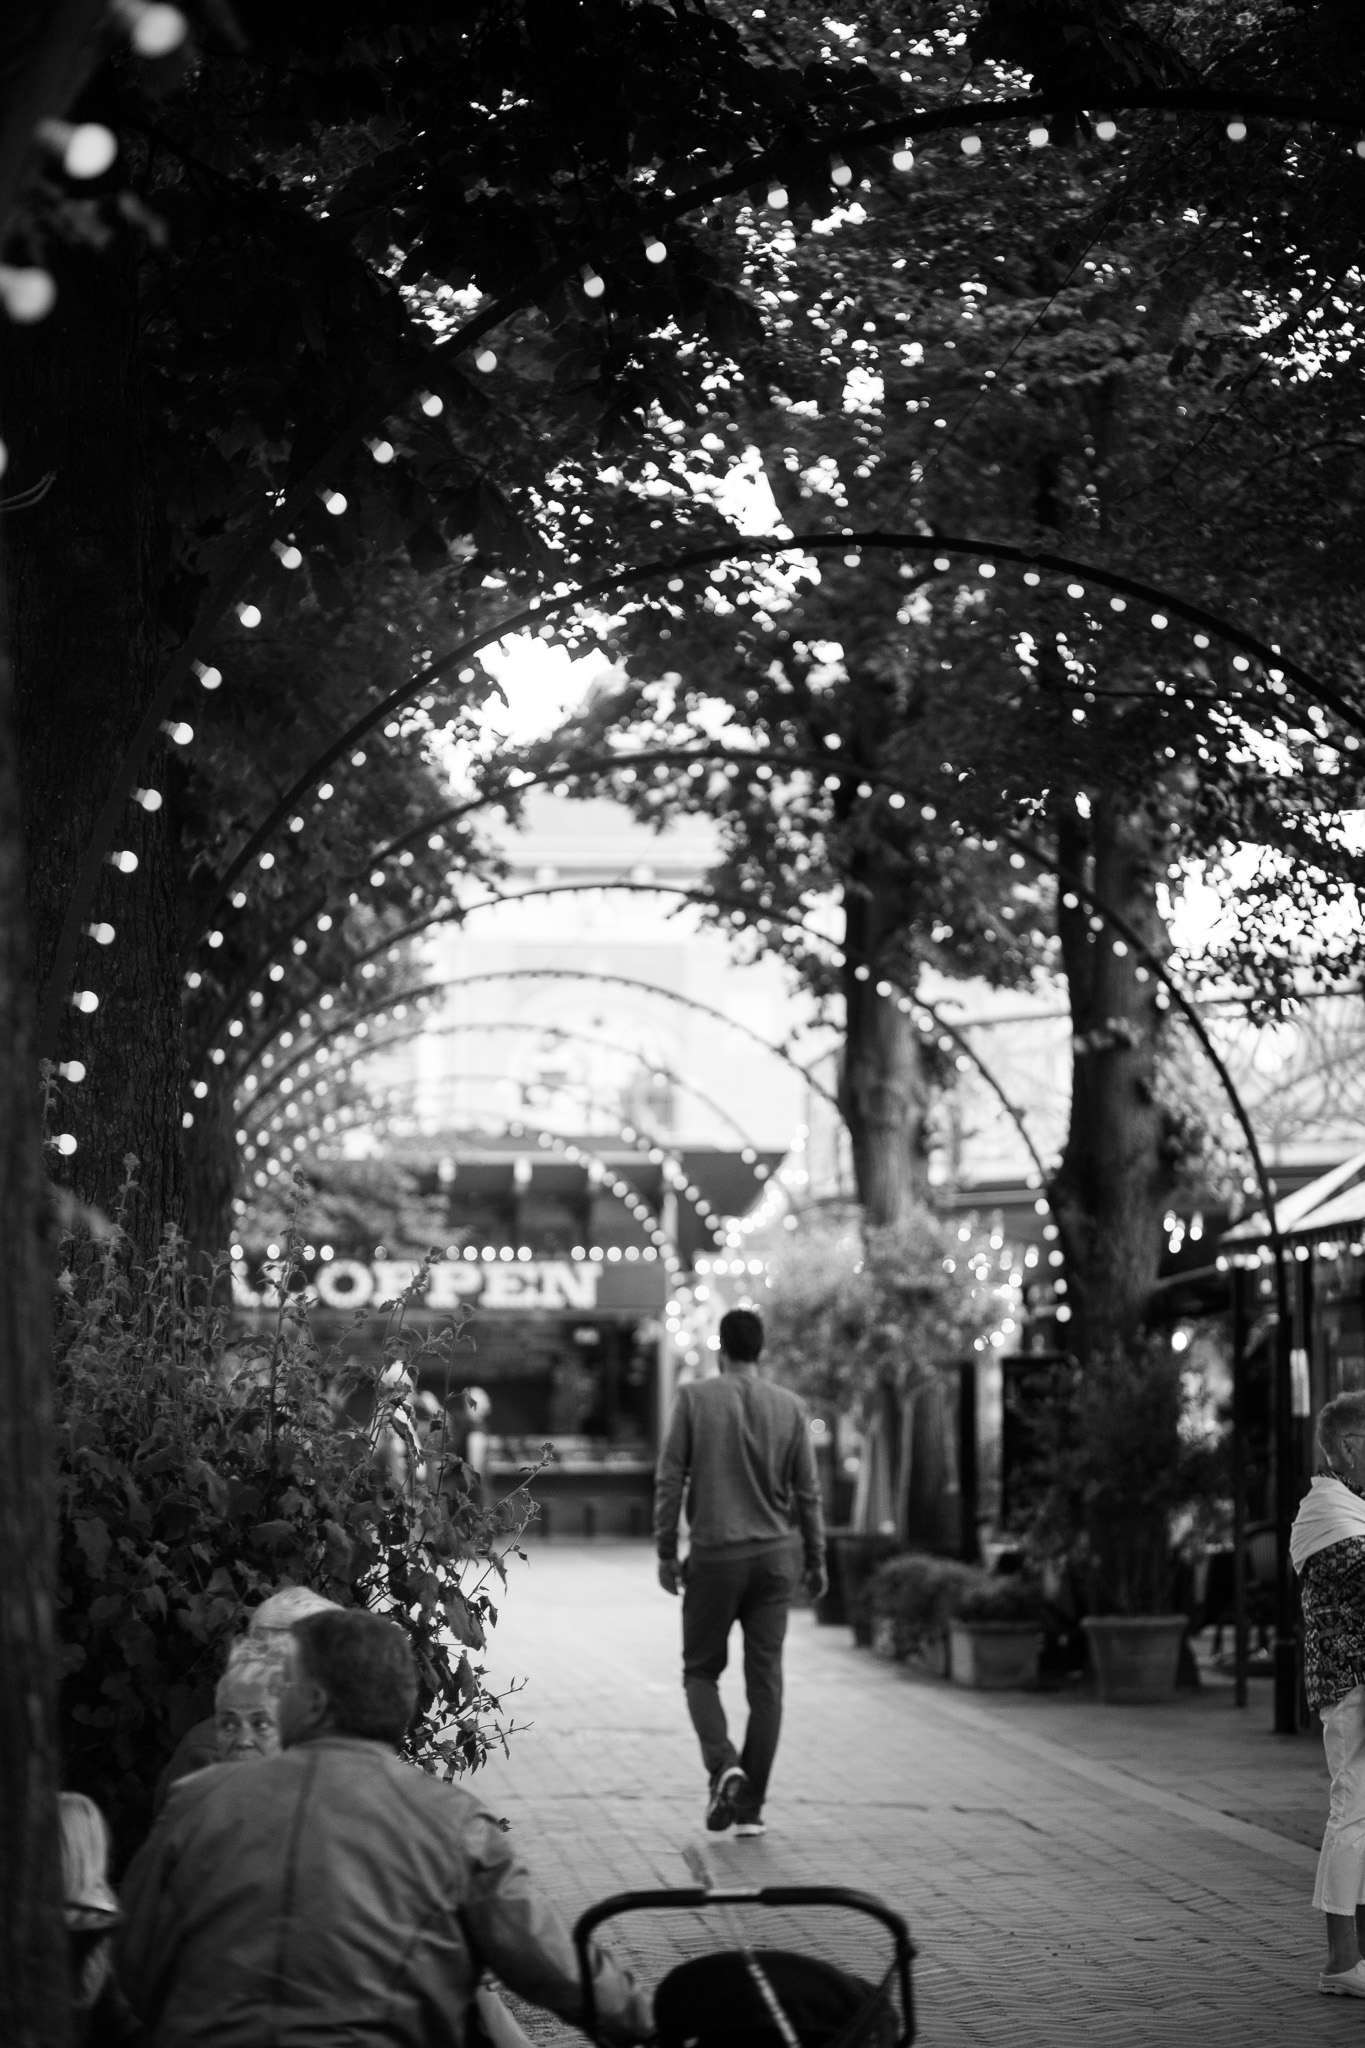 Twinkly lights over the arcade at Tivoli.